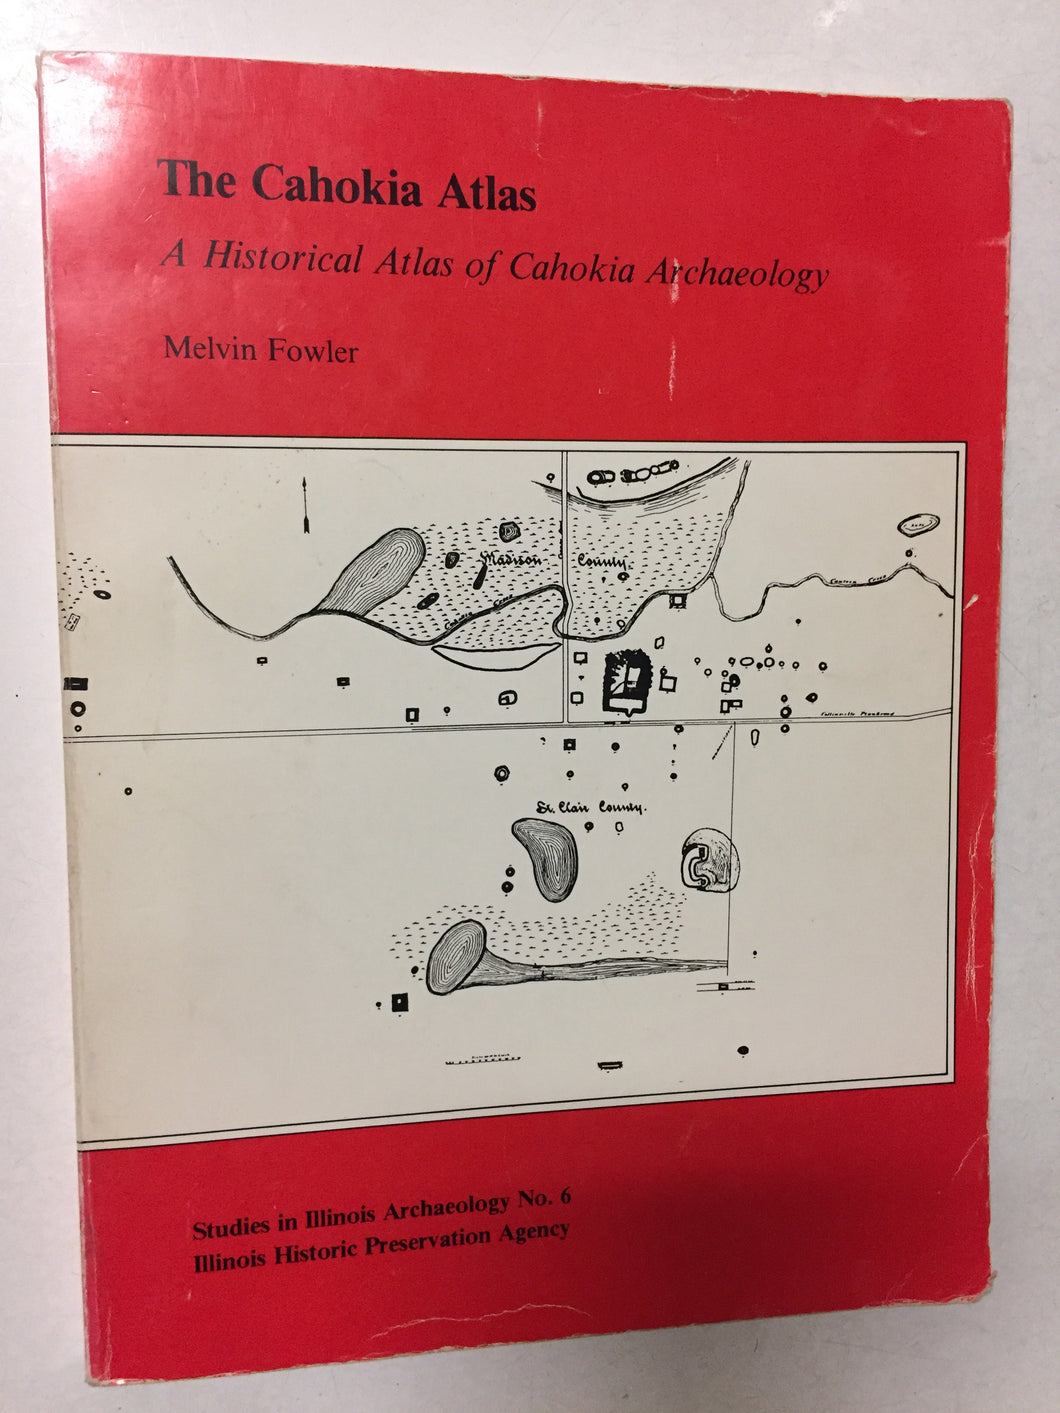 The Cahokia Atlas A Historical Atlas of Cahokia Archaeology - Slickcatbooks